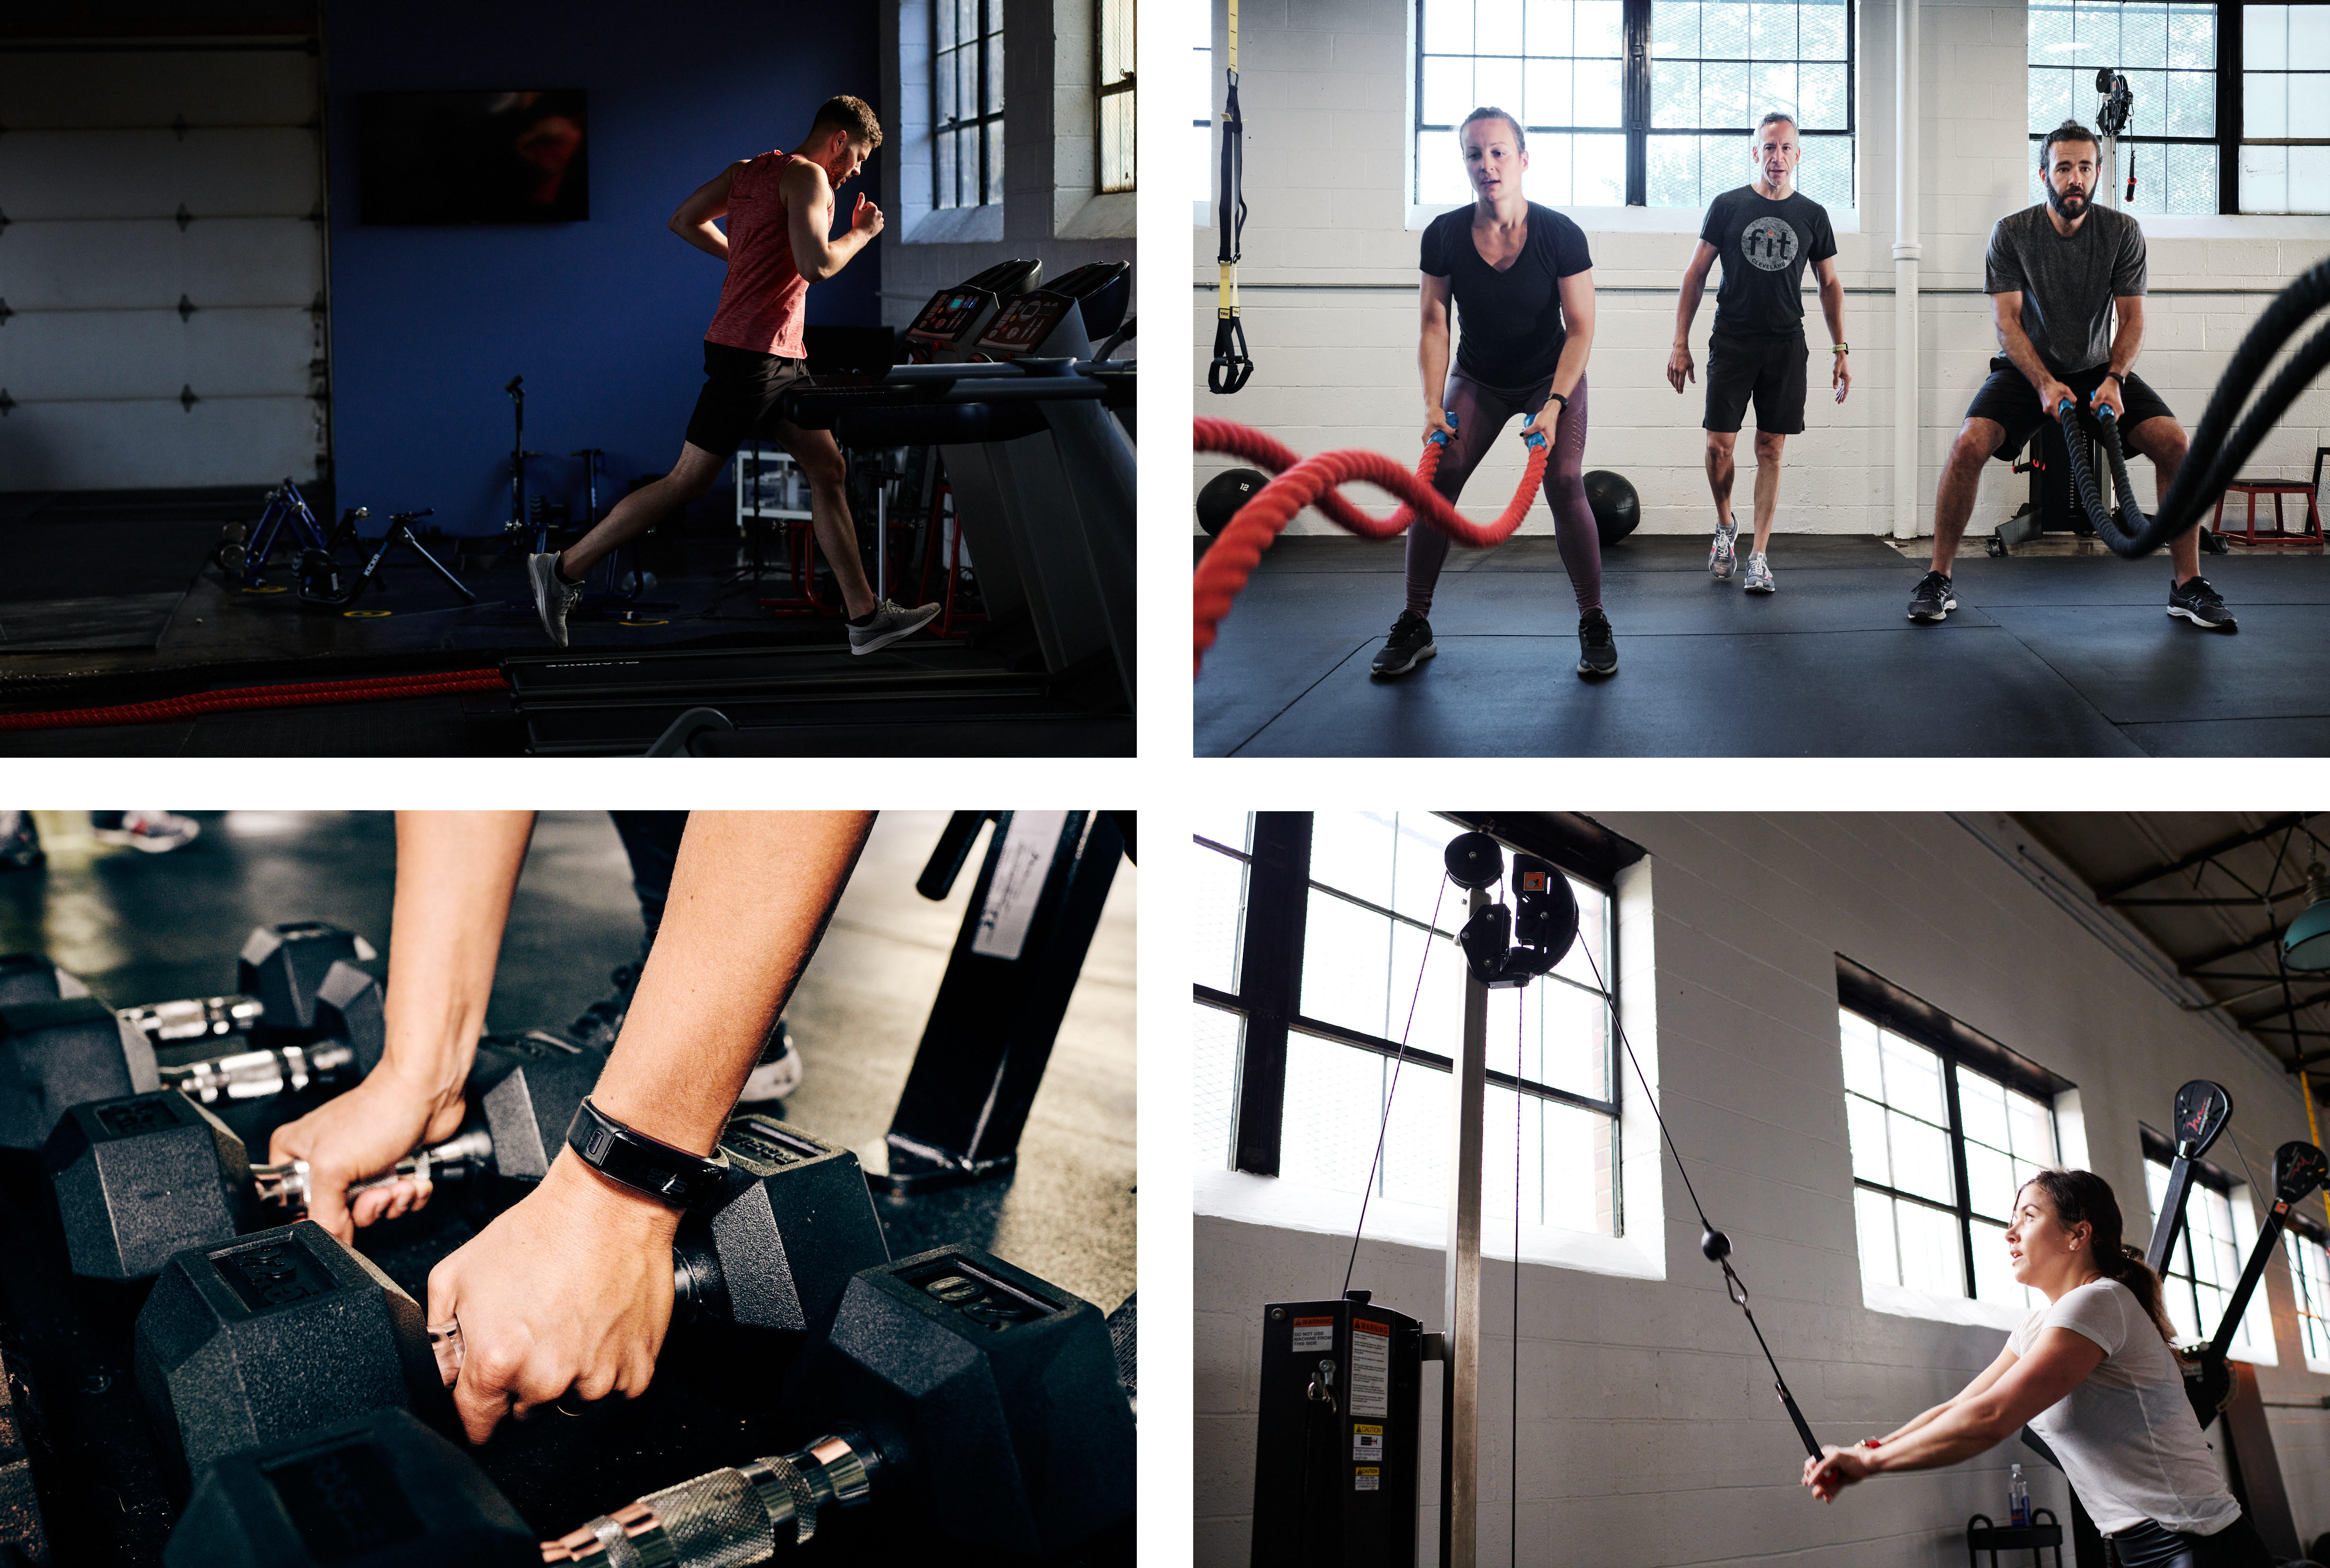 A look at Angelo's imagery for a Cleveland-based fitness client